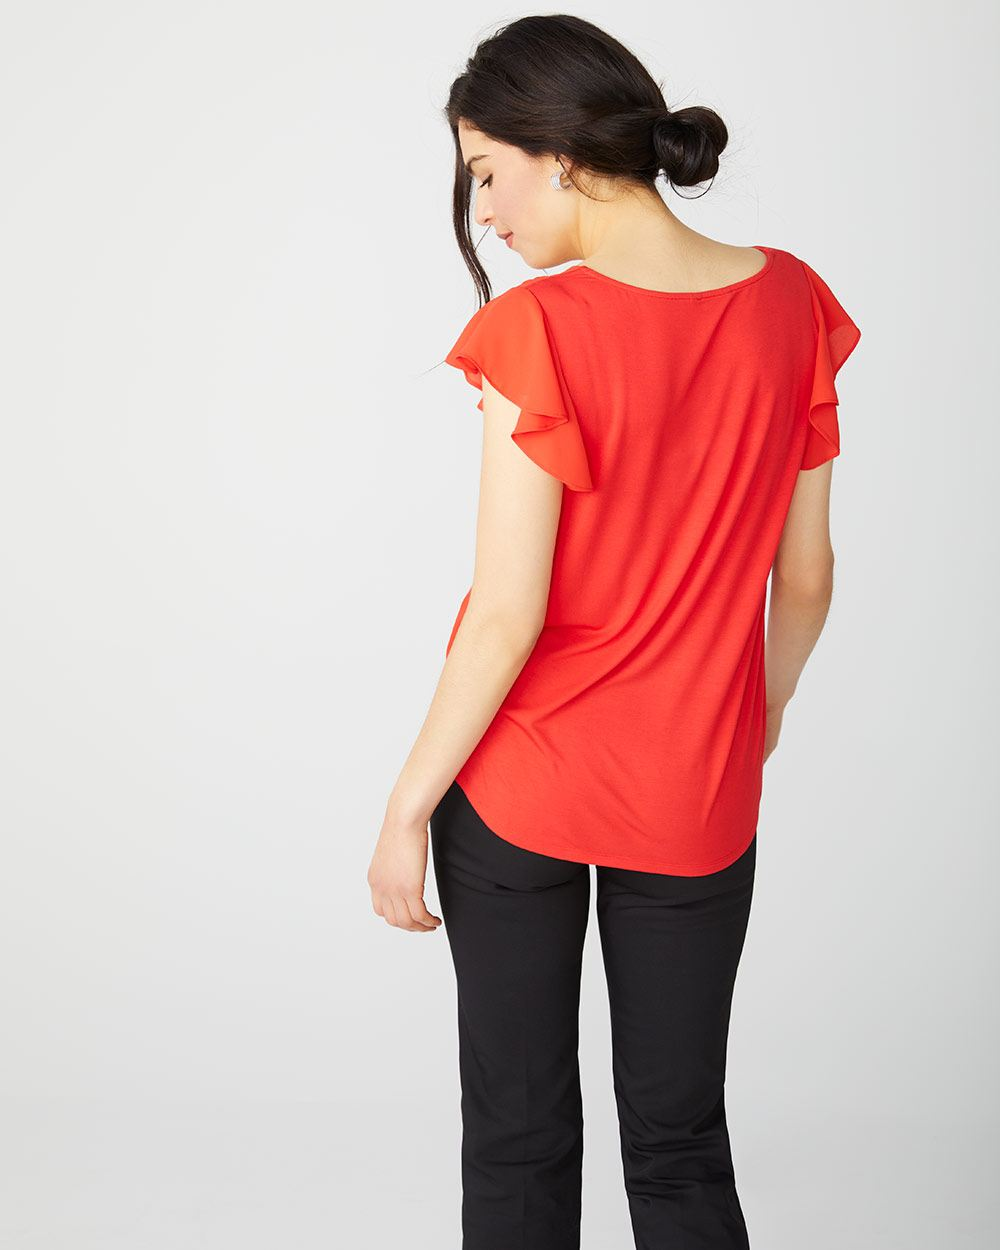 Flutter sleeve Square neck Mixed Media t-shirt